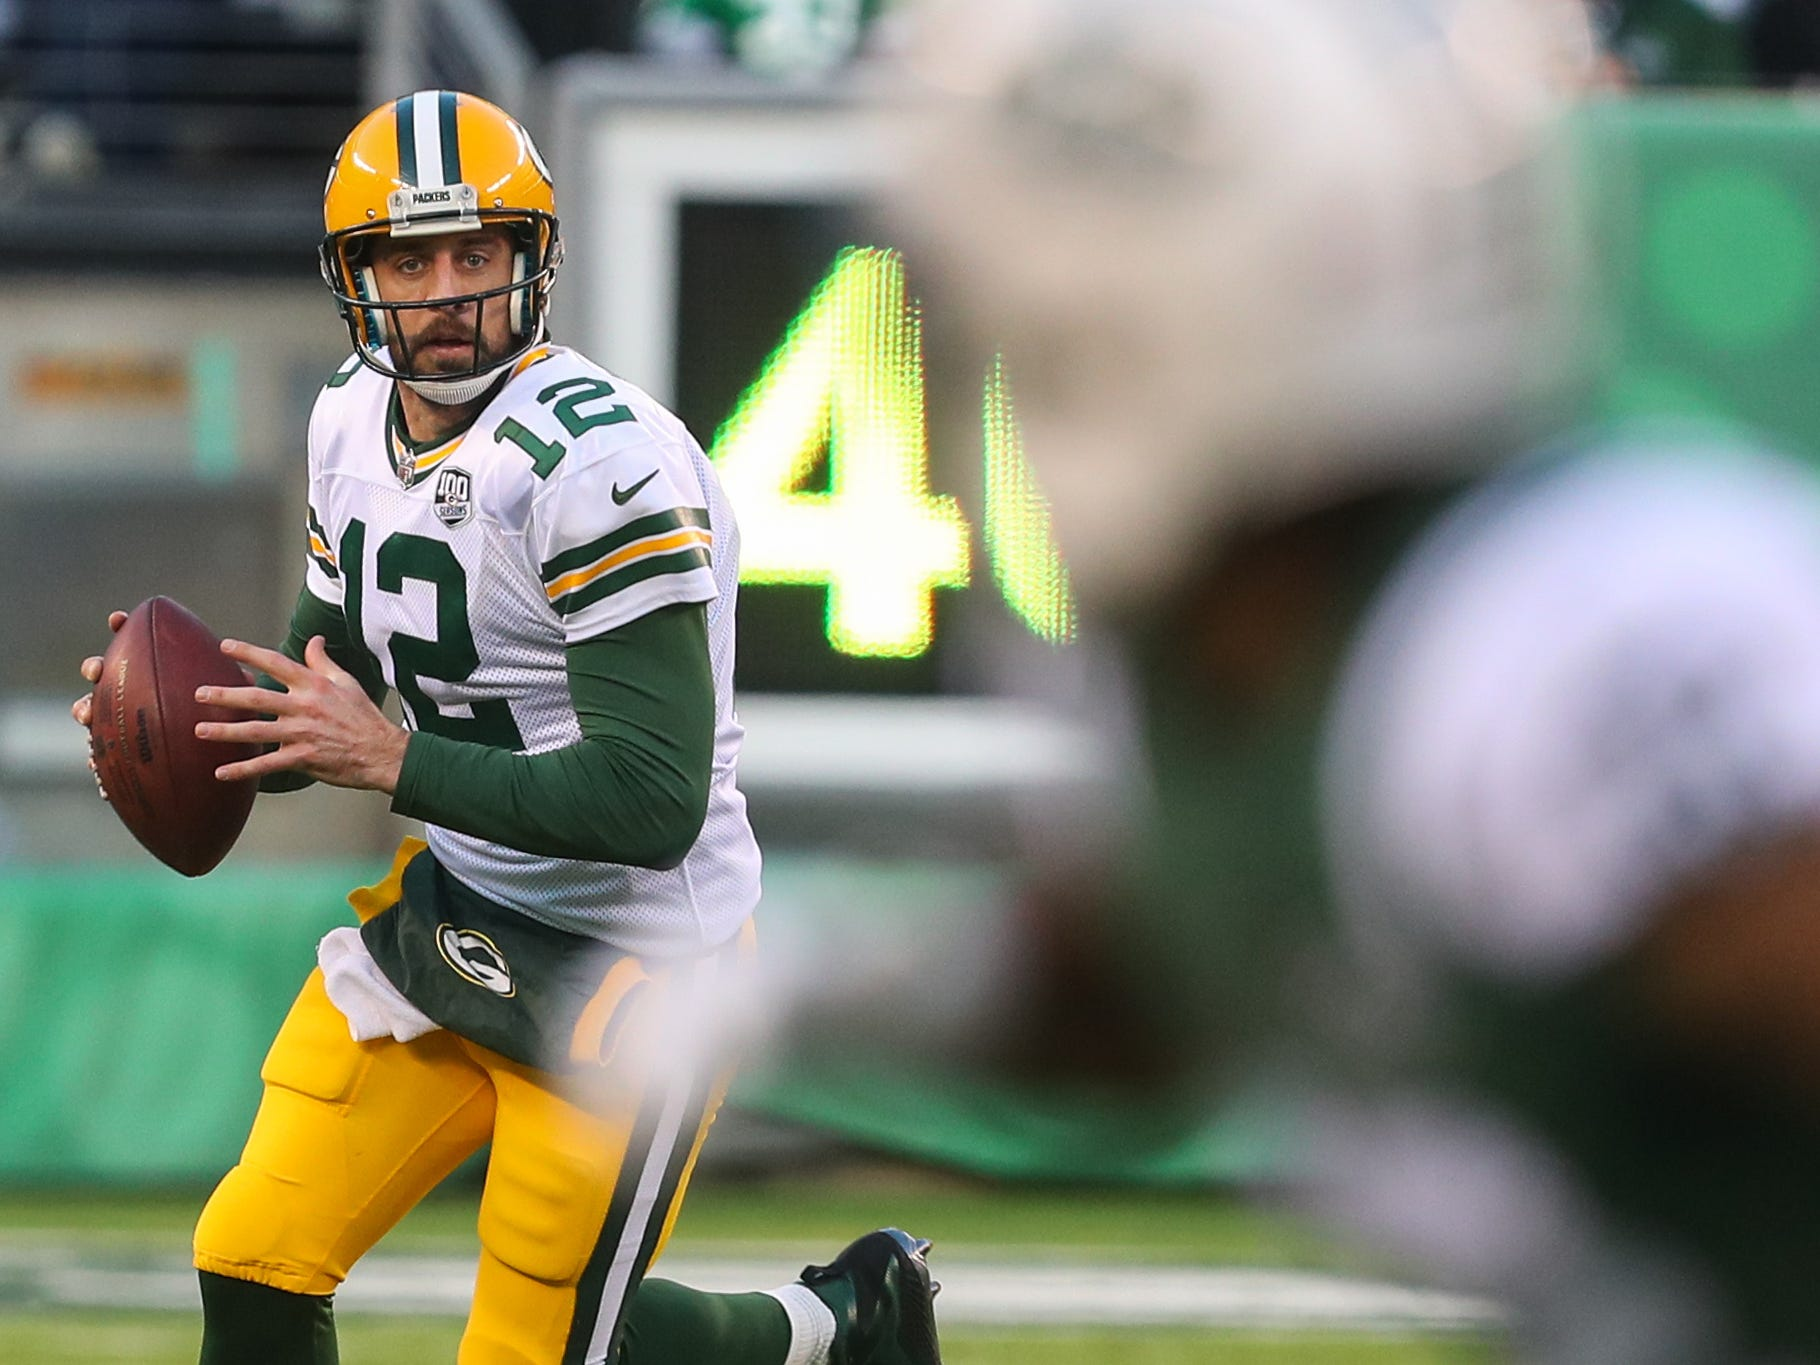 17. Packers (19): Aaron Rodgers has uncharacteristically missed lots of receivers in 2018. But he misses defenders, too. That 25-to-2 TD-INT ratio is crazy.